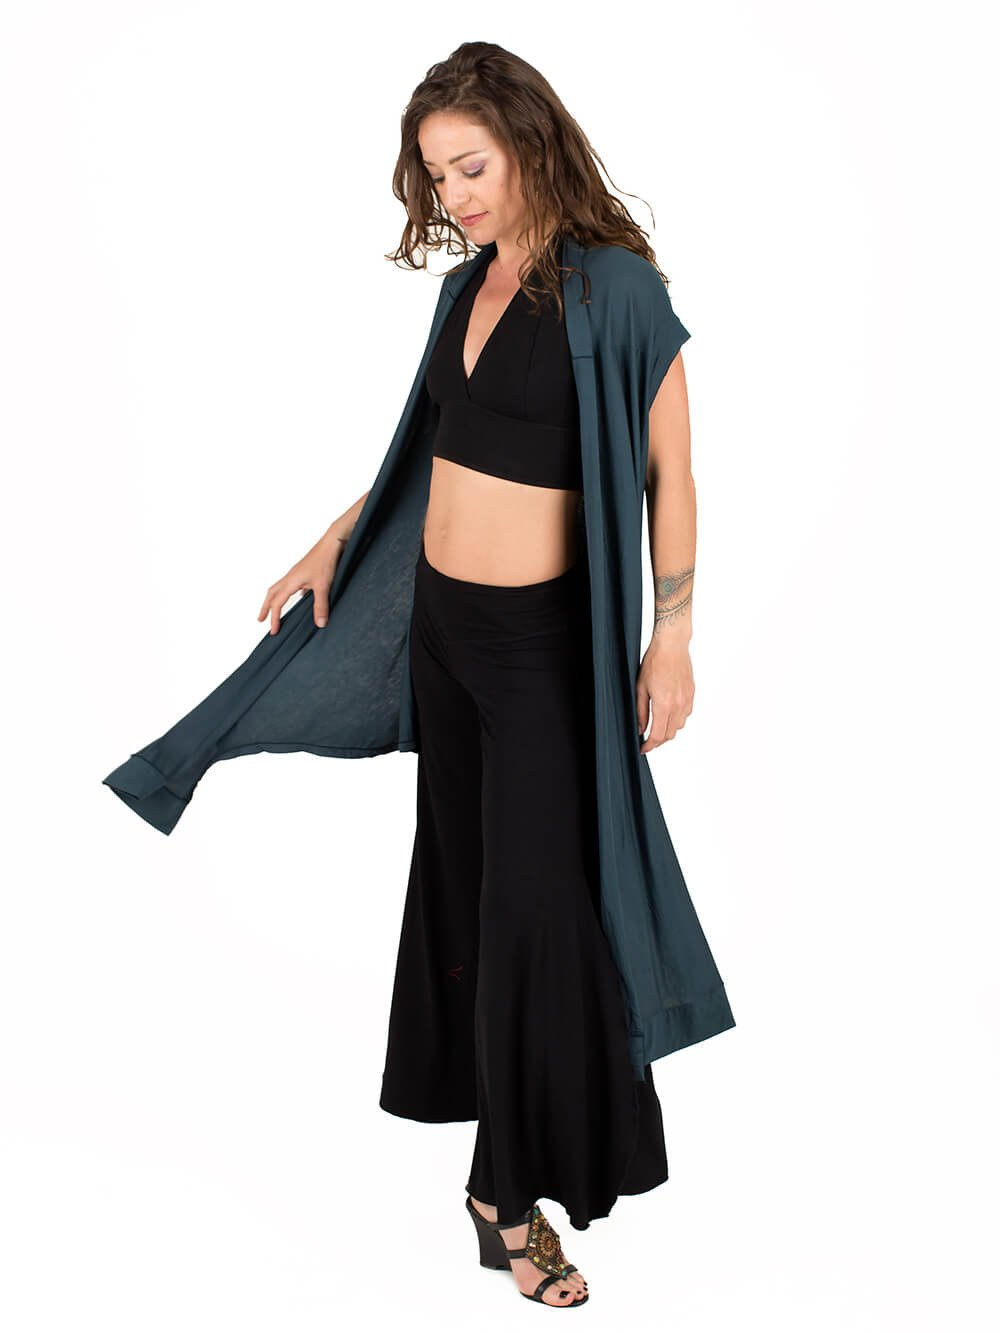 Womens Rayon Jersey Flow Vest in Teal with Halter Bra Top in Black and Rayon Jersey Slit Pants in Black-side view